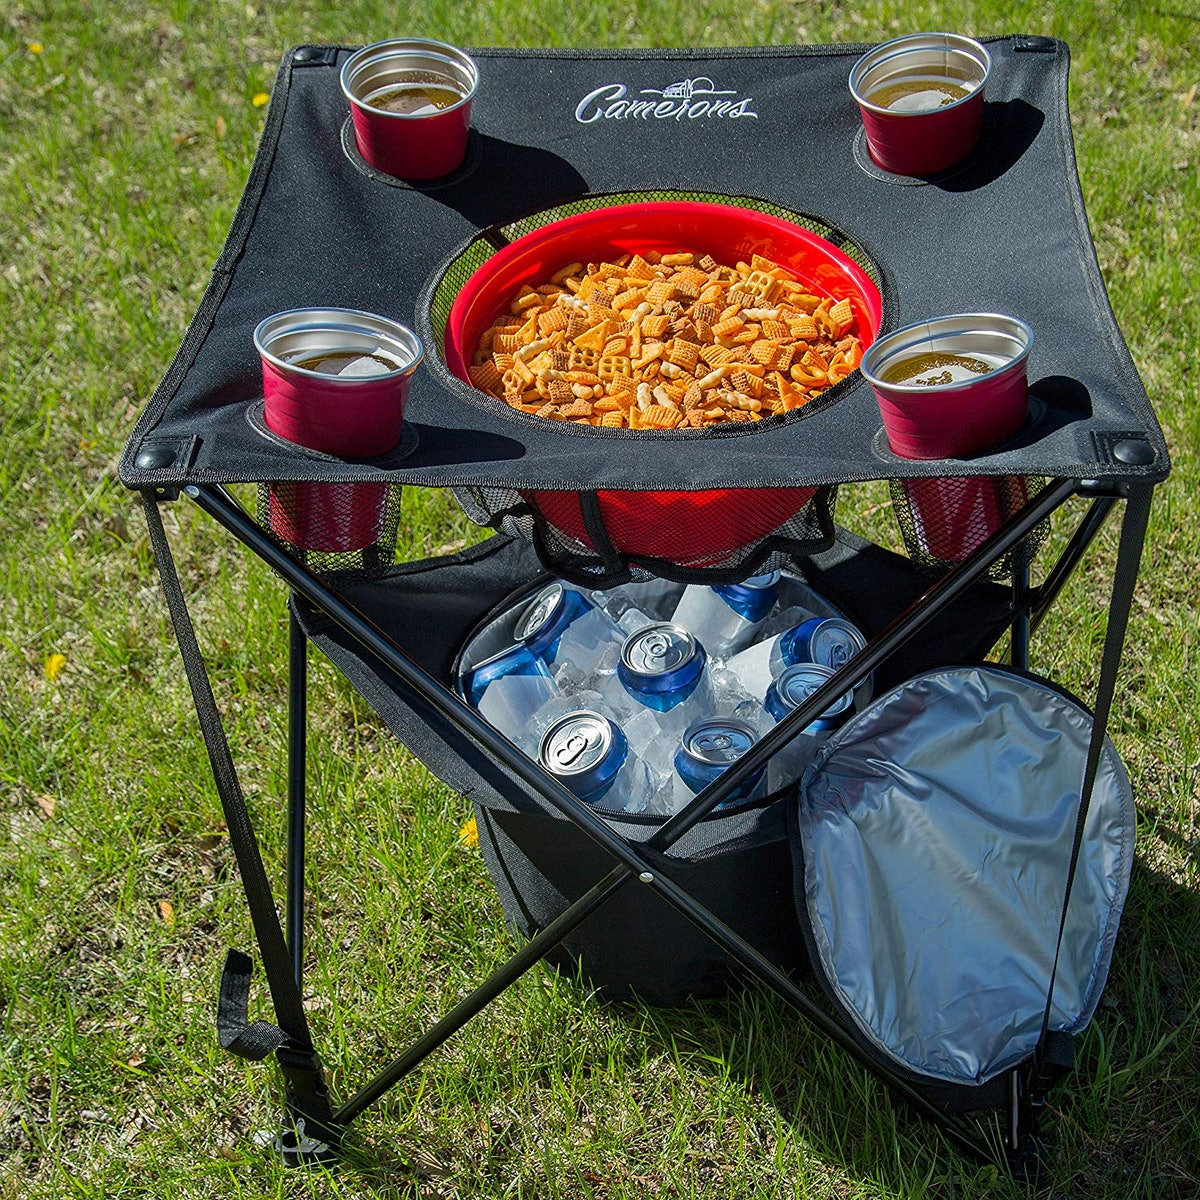 Camerons Products Collapsible Picnic Table